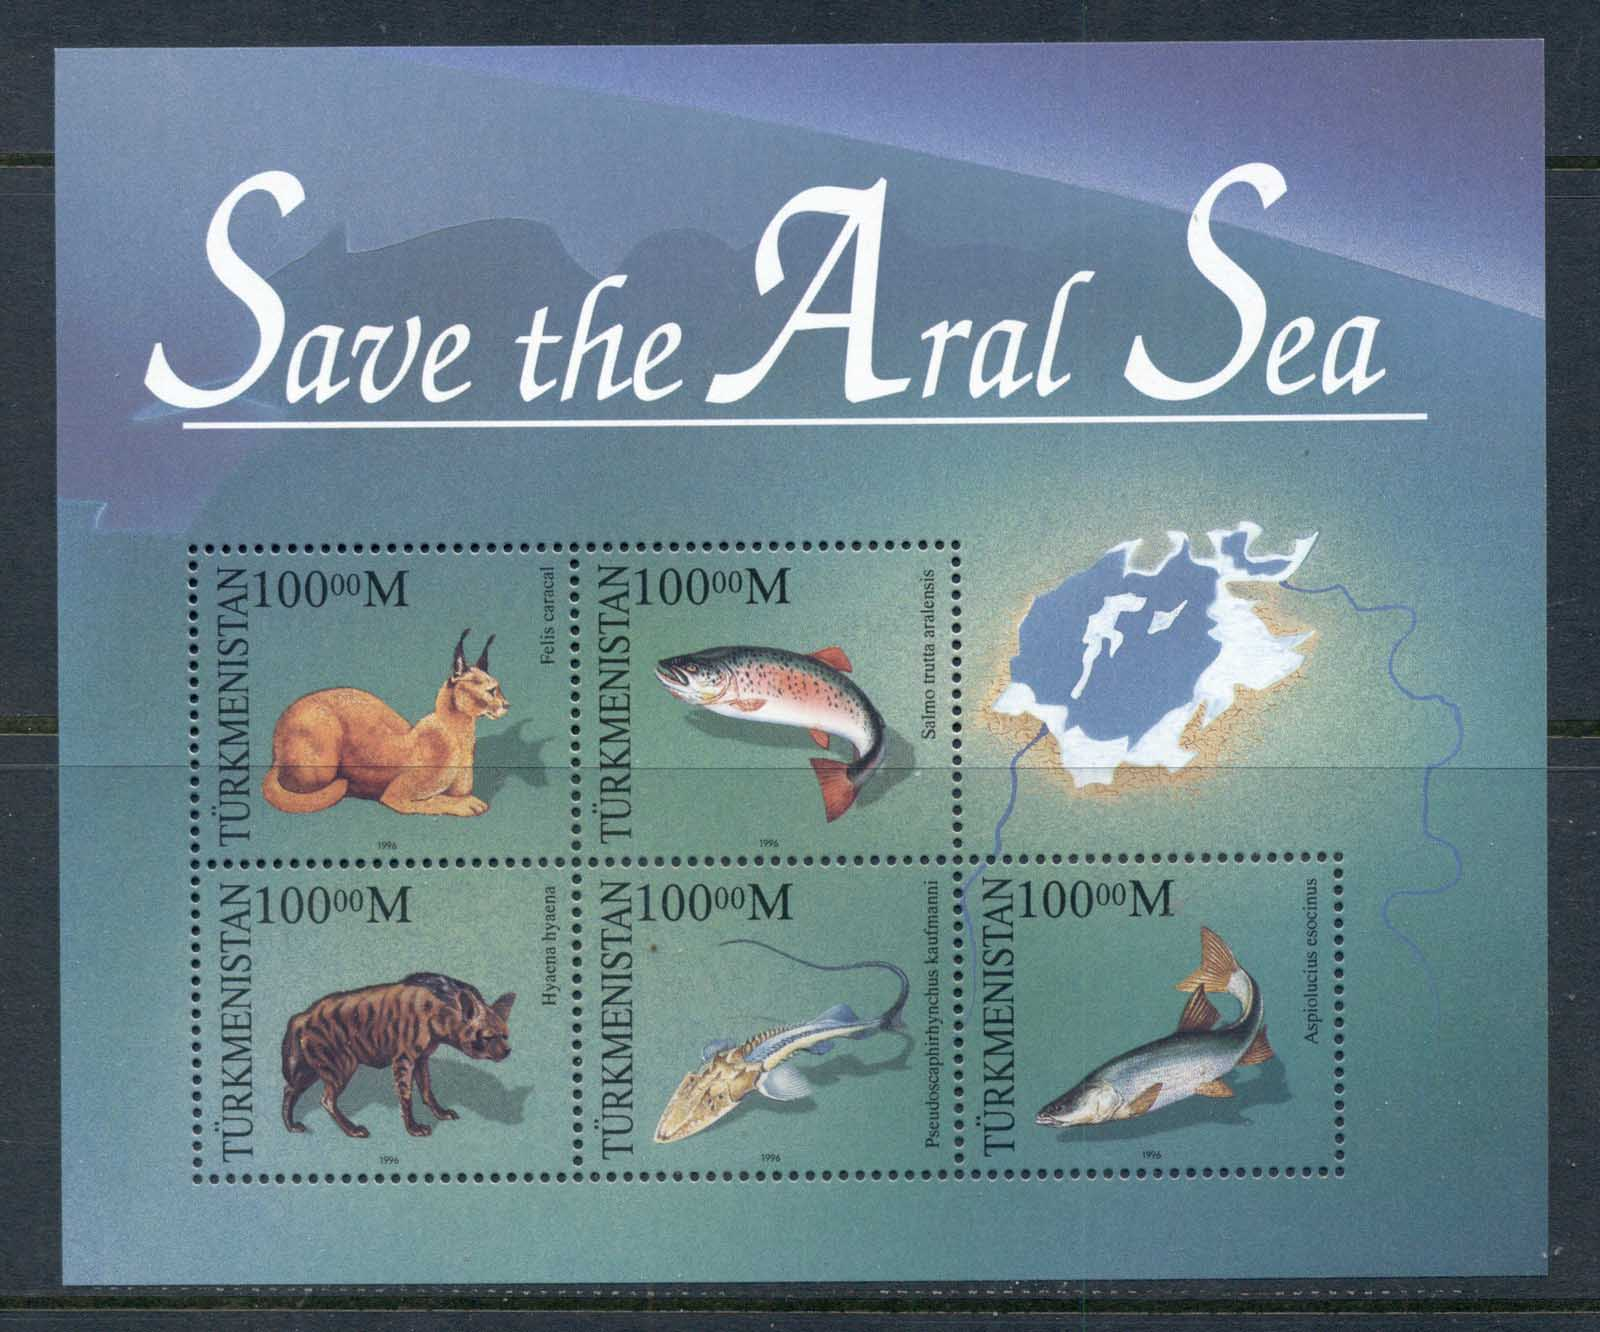 Turkmenistan 1996 Save the Aral Sea MS MUH